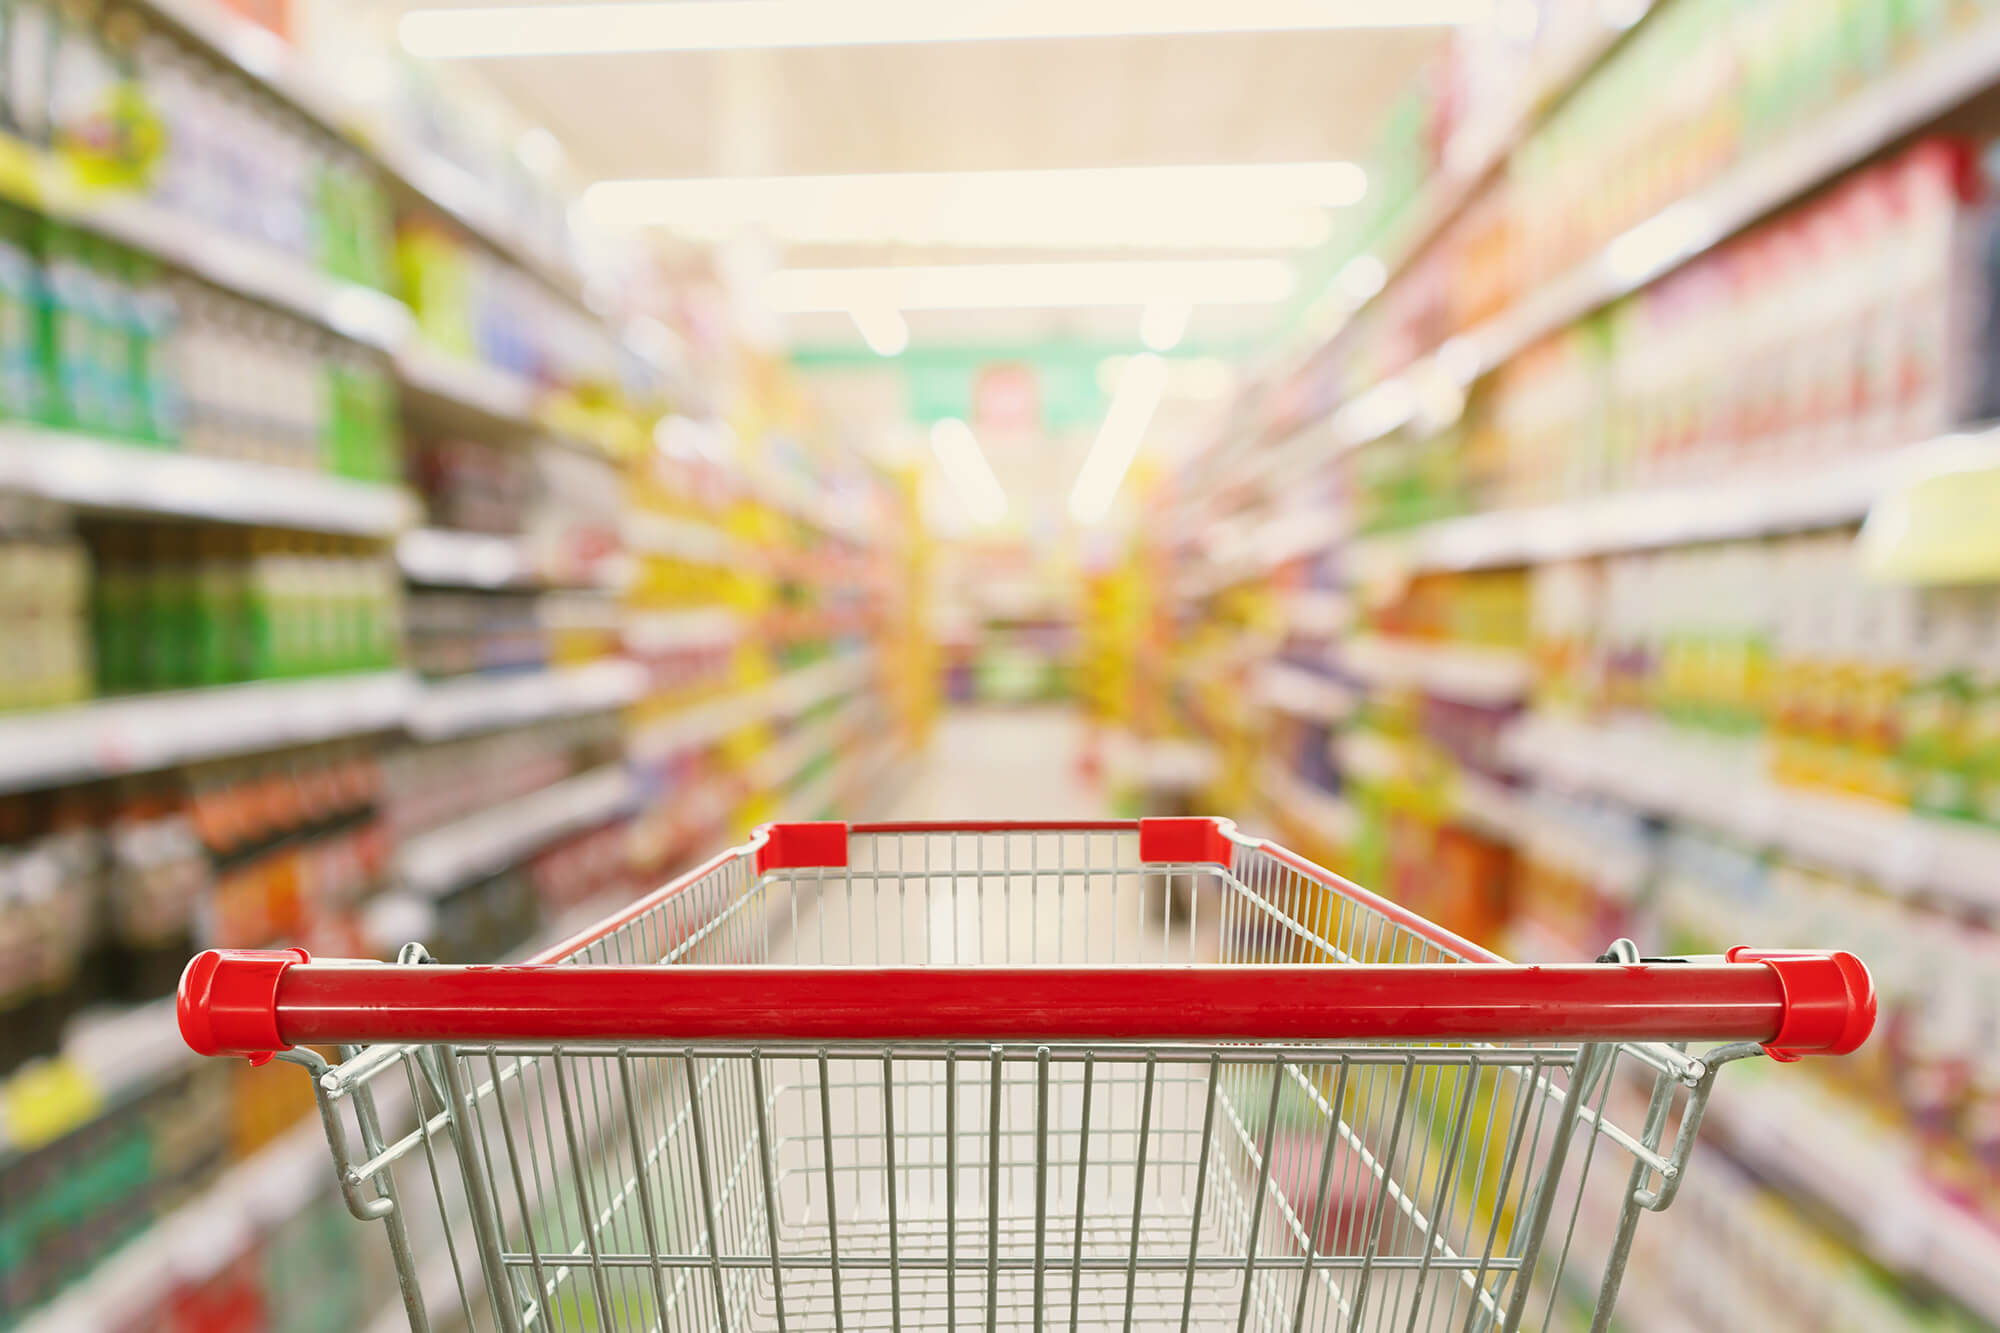 How Do CPG Brands Use Data?